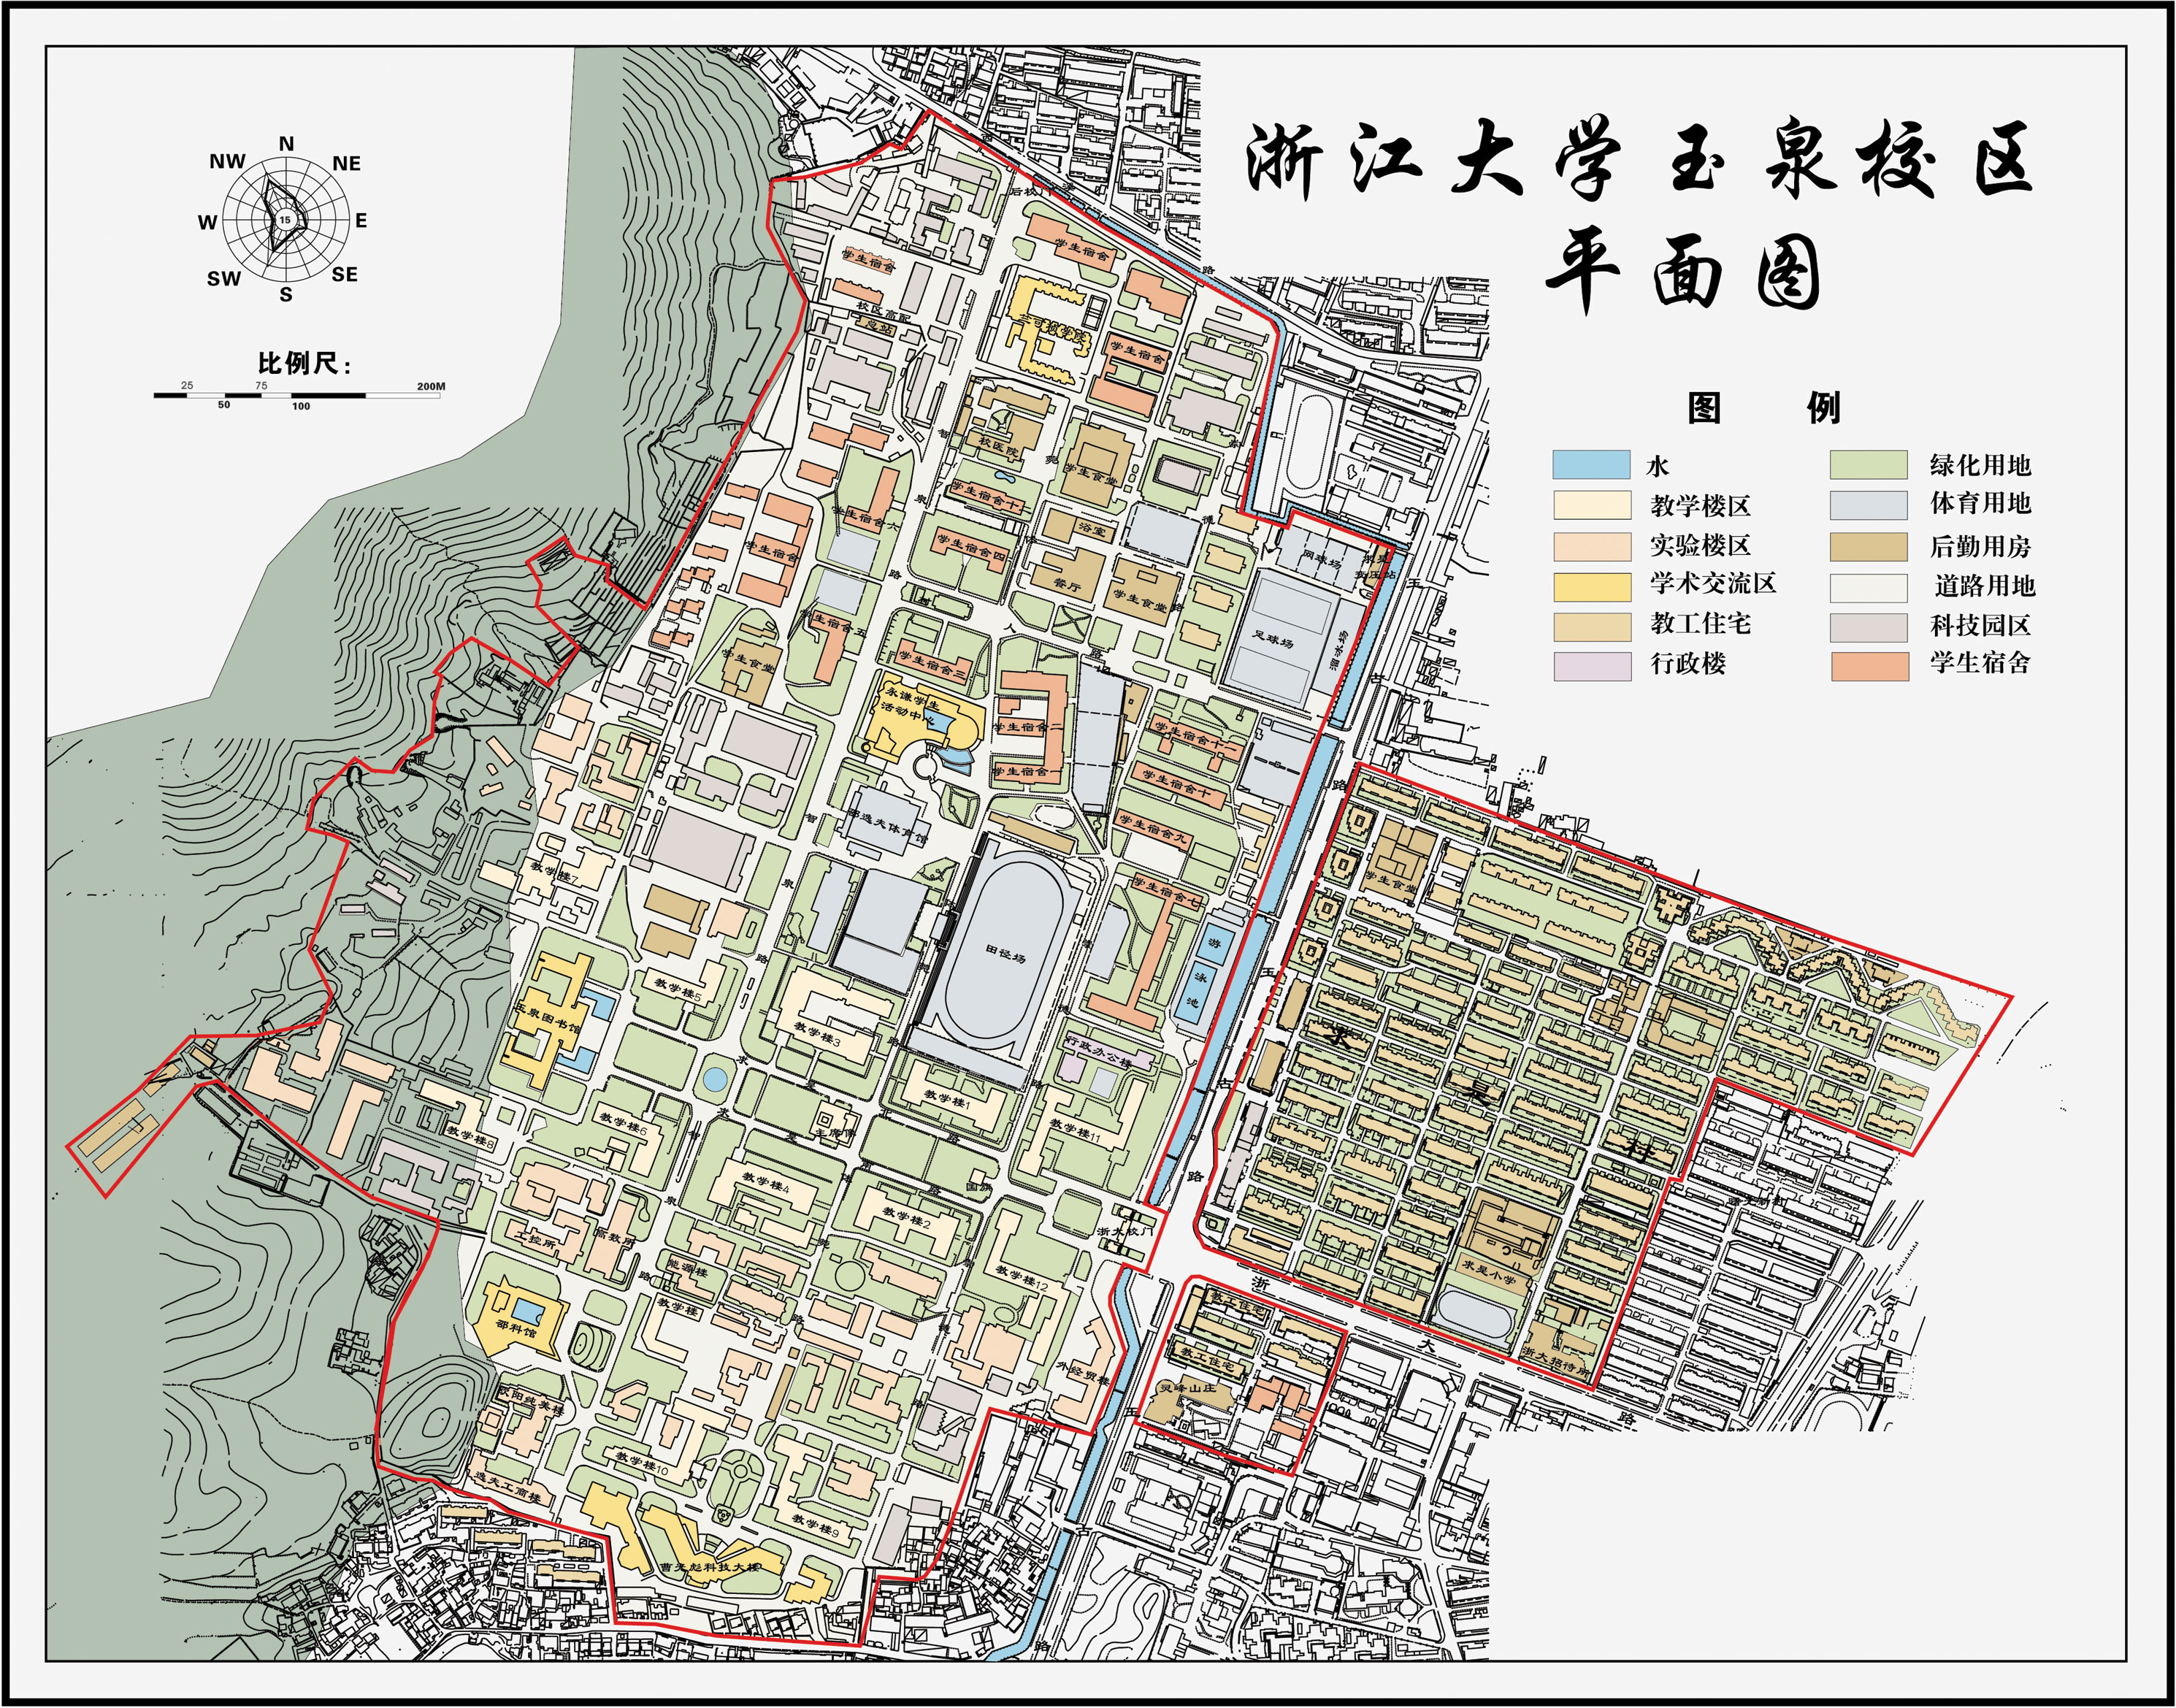 Norfolk State Campus Map.Zhejiang University China Admissions